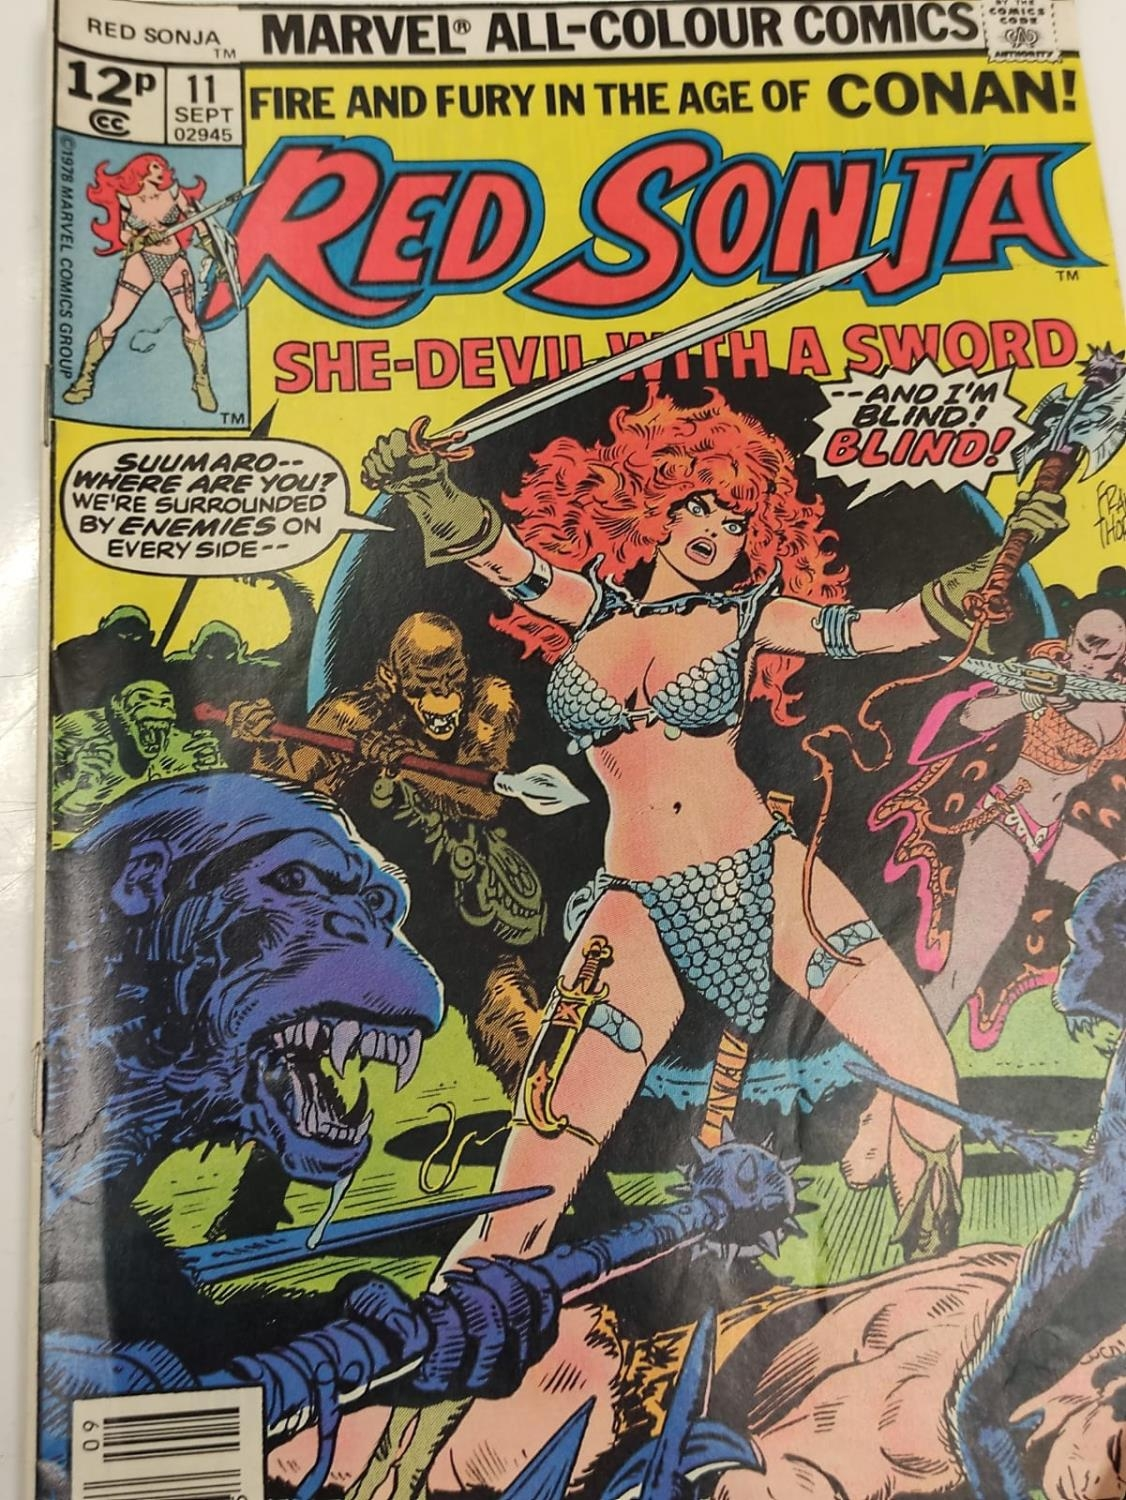 5 editions of Special Vintage Marvel Comics including 'The Tomb of Dracula'. - Image 3 of 15